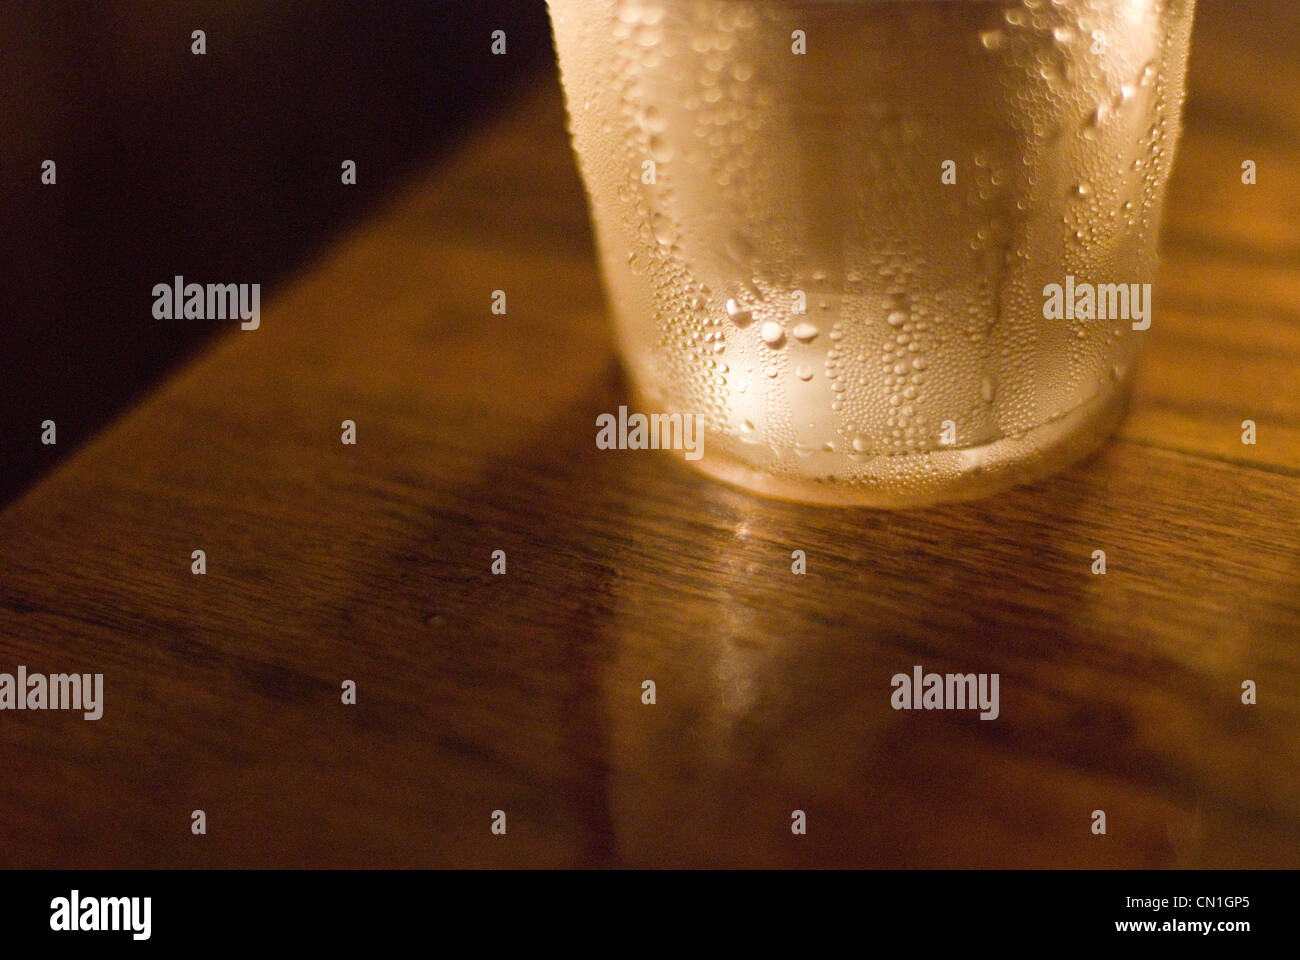 Condensation on Water Glass - Stock Image